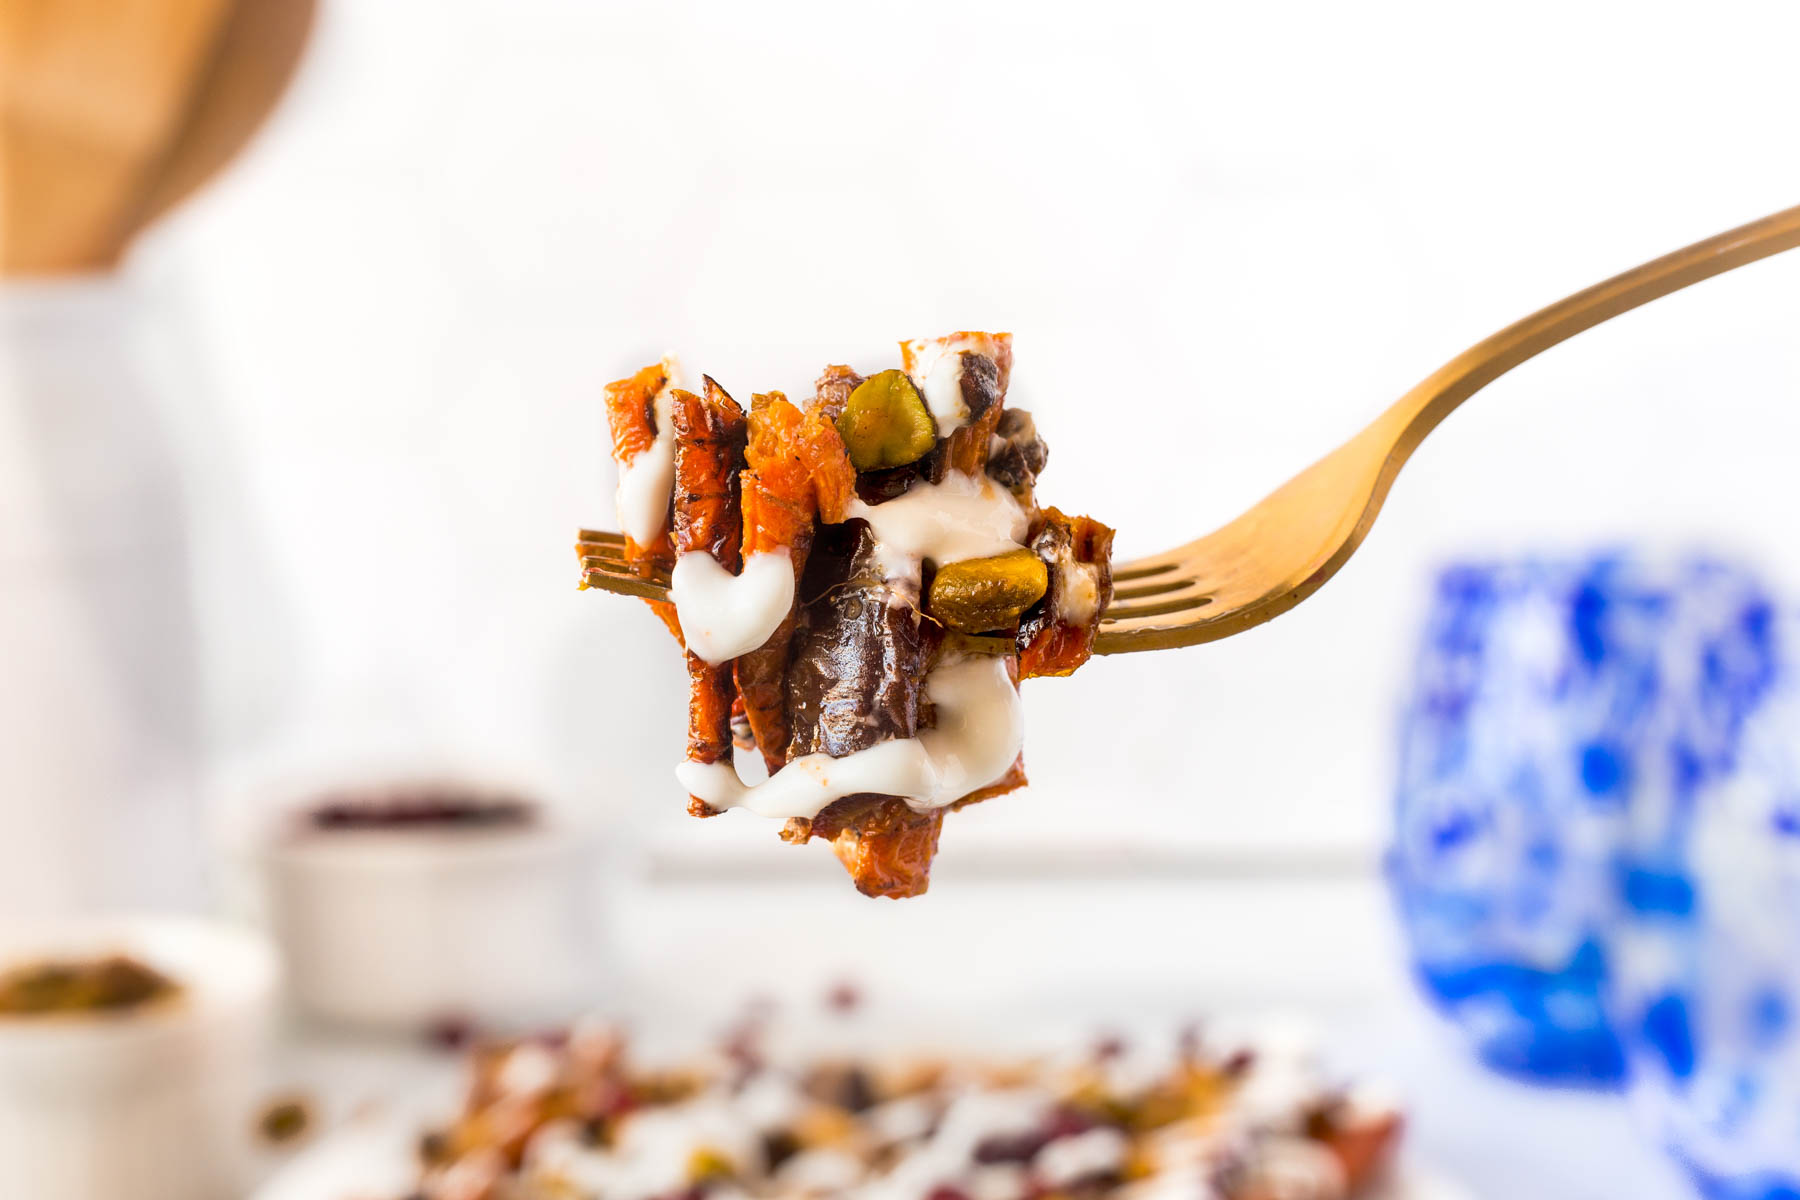 A fork full of Harissa grilled carrots with the plate of carrots in the background.